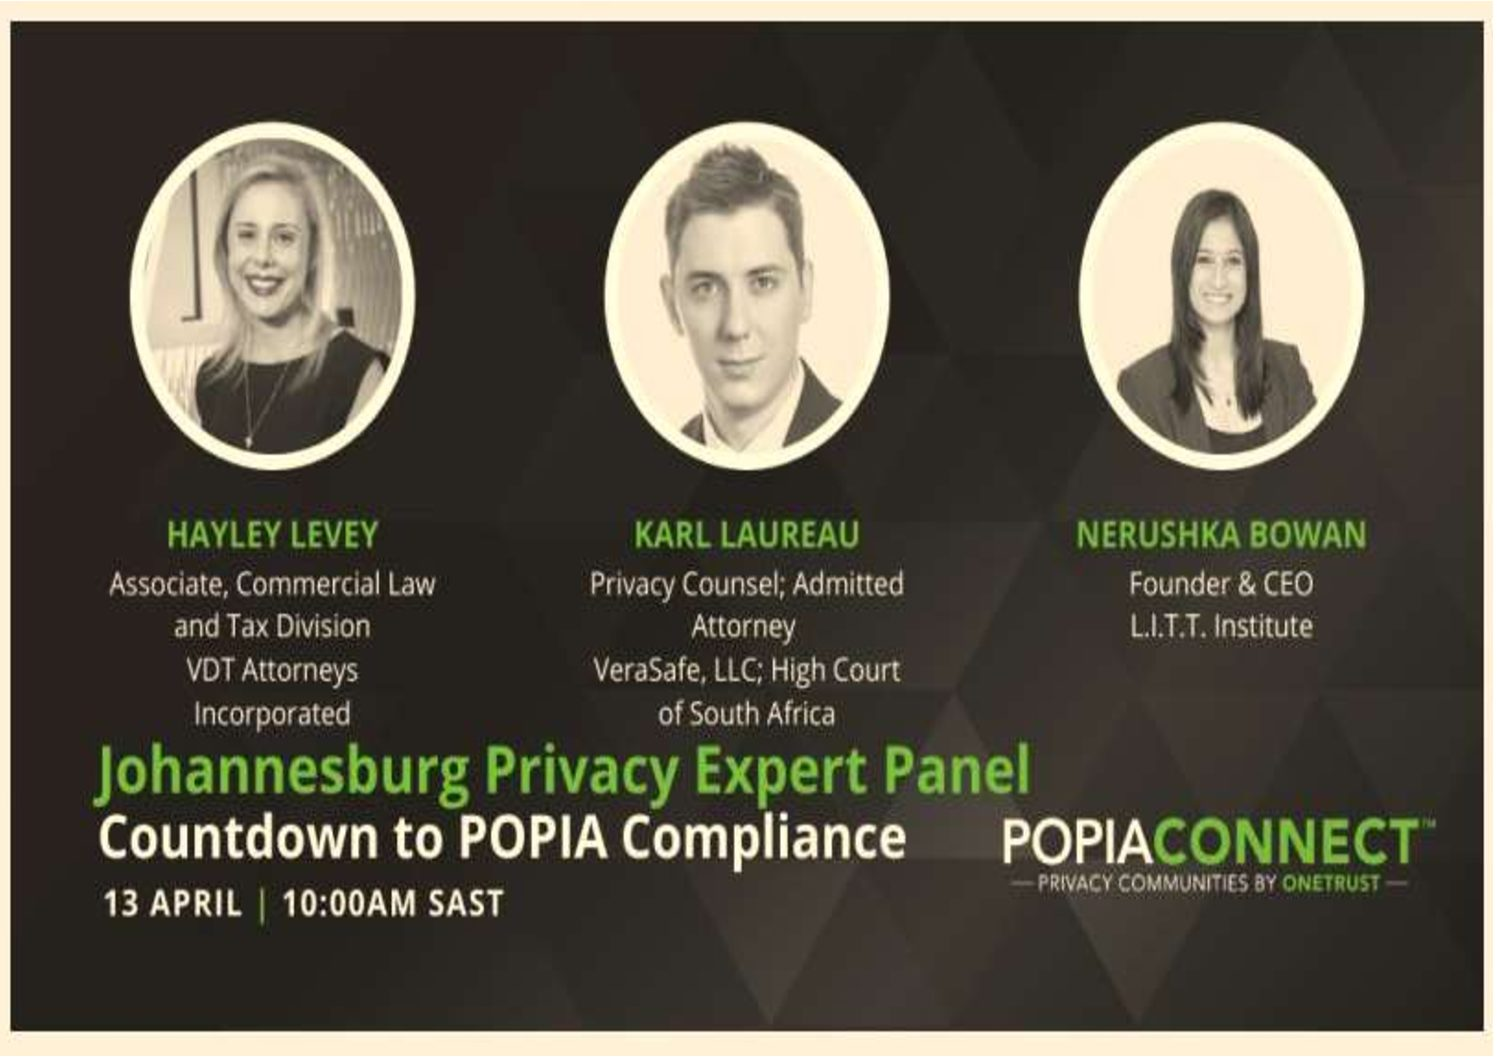 [ICYMI] – VDT Attorneys joined POPIAConnect Panelist Discussion on 13 April 2021